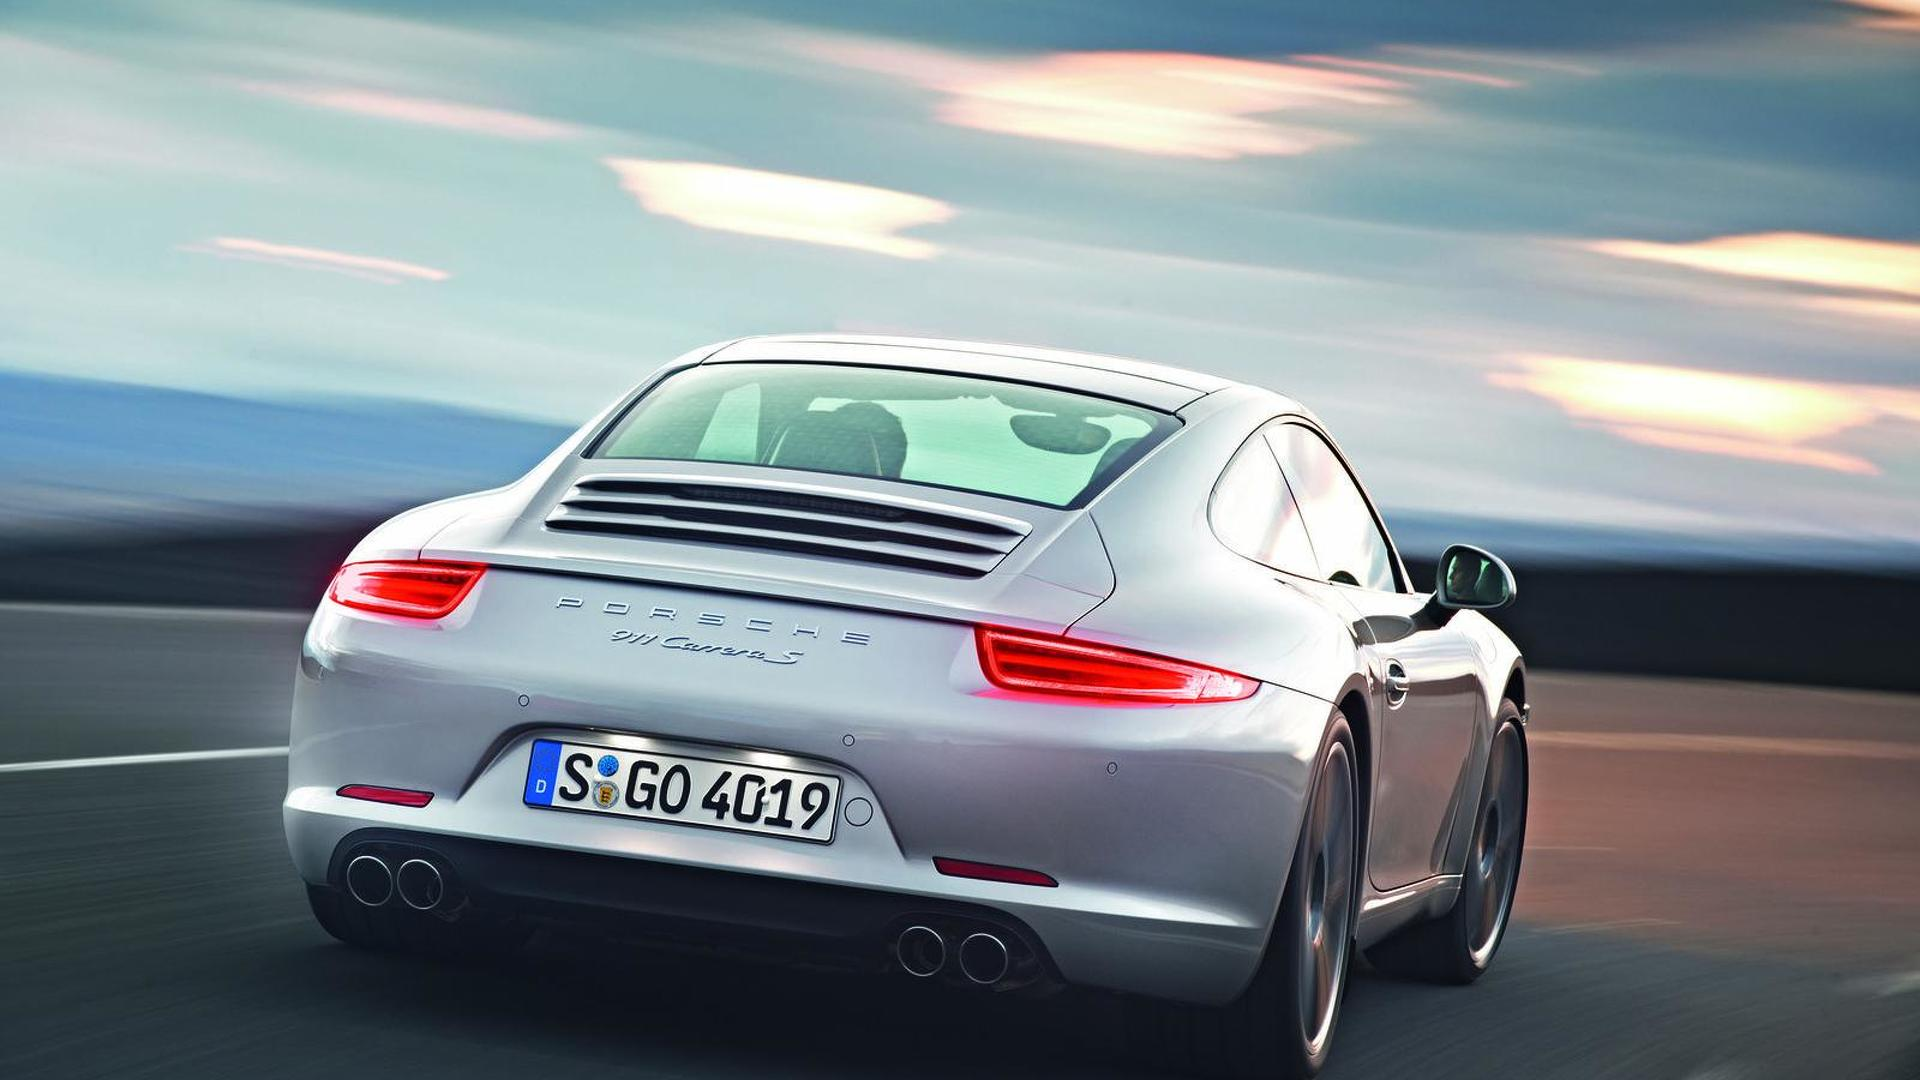 2012 Porsche 911's 7-speed manual gearbox explained [video]